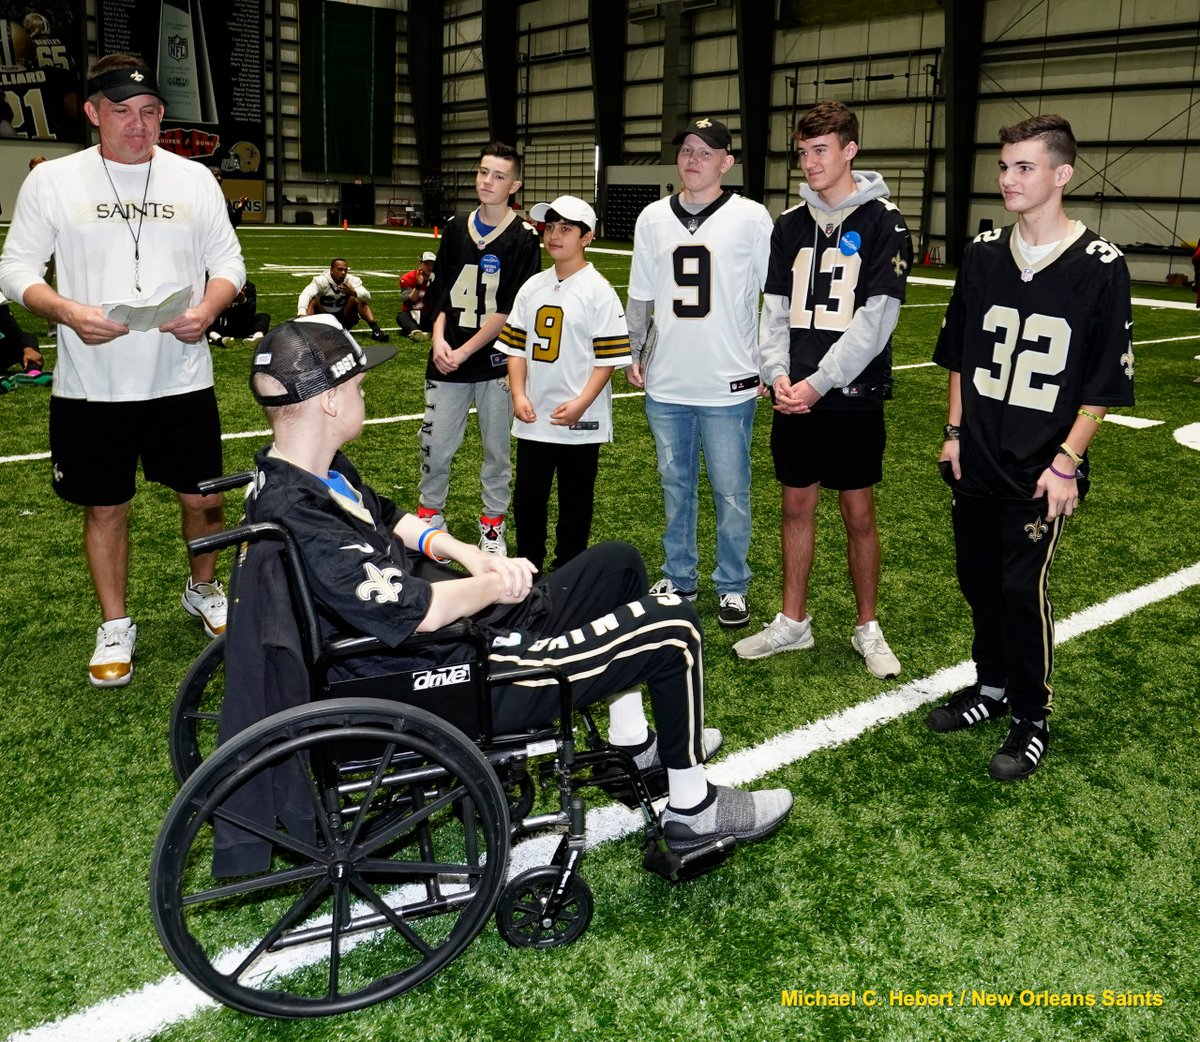 The Saints & @PresleyWealth recently hosted kids from @MakeAWish as they met current players & members of the 2009 Superbowl team! The Kicks for Kids program raised $10,200 for Make-A-Wish this season as Presley Wealth Management donated $300 for each successful field goal.